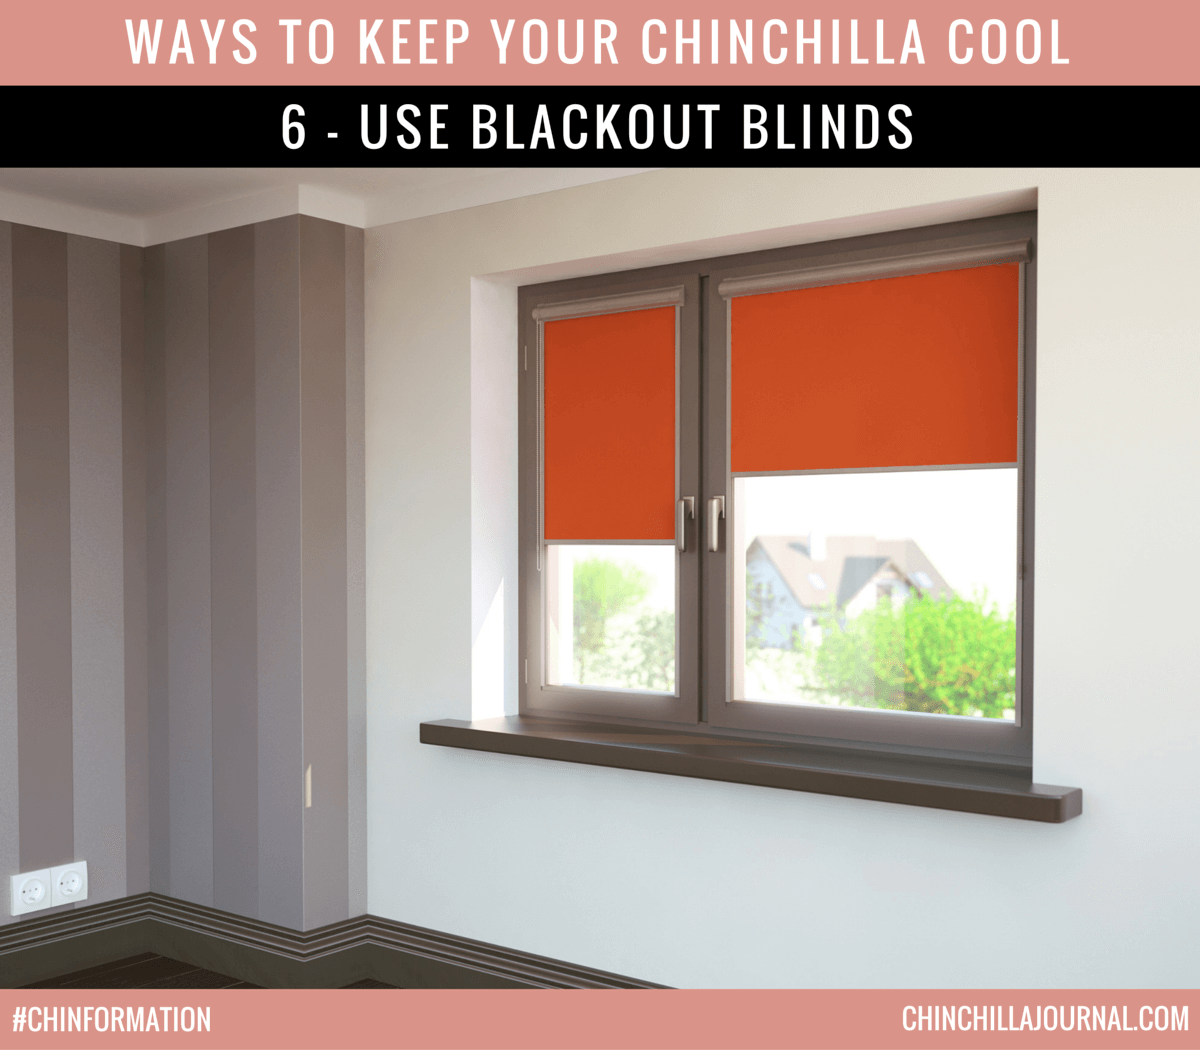 Ways To Keep Your Chinchilla Cool 6 - Use Blackout Blinds